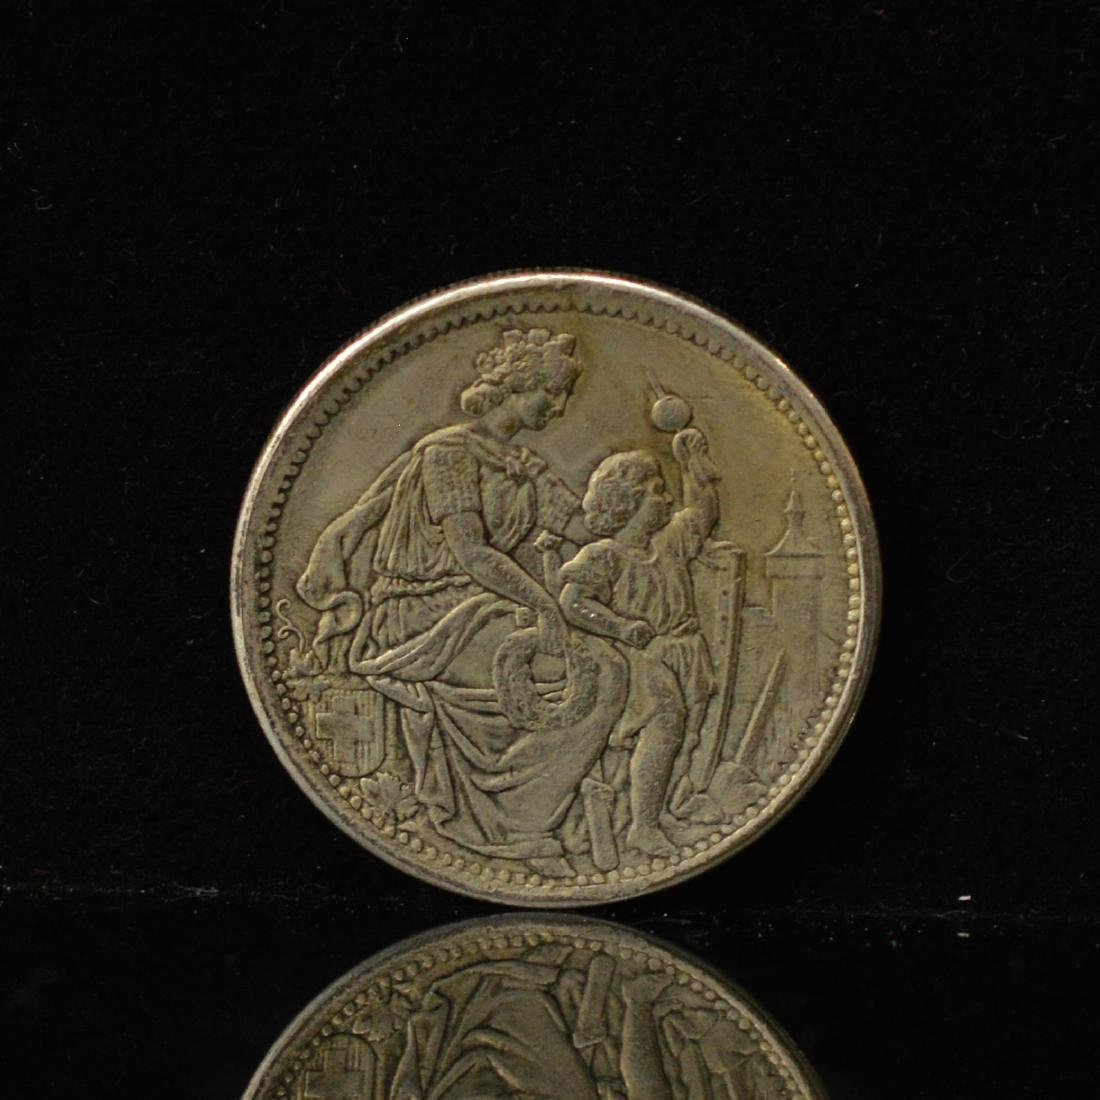 A1796 US libery Silver coins and A 1865 5 Francs coin - 4